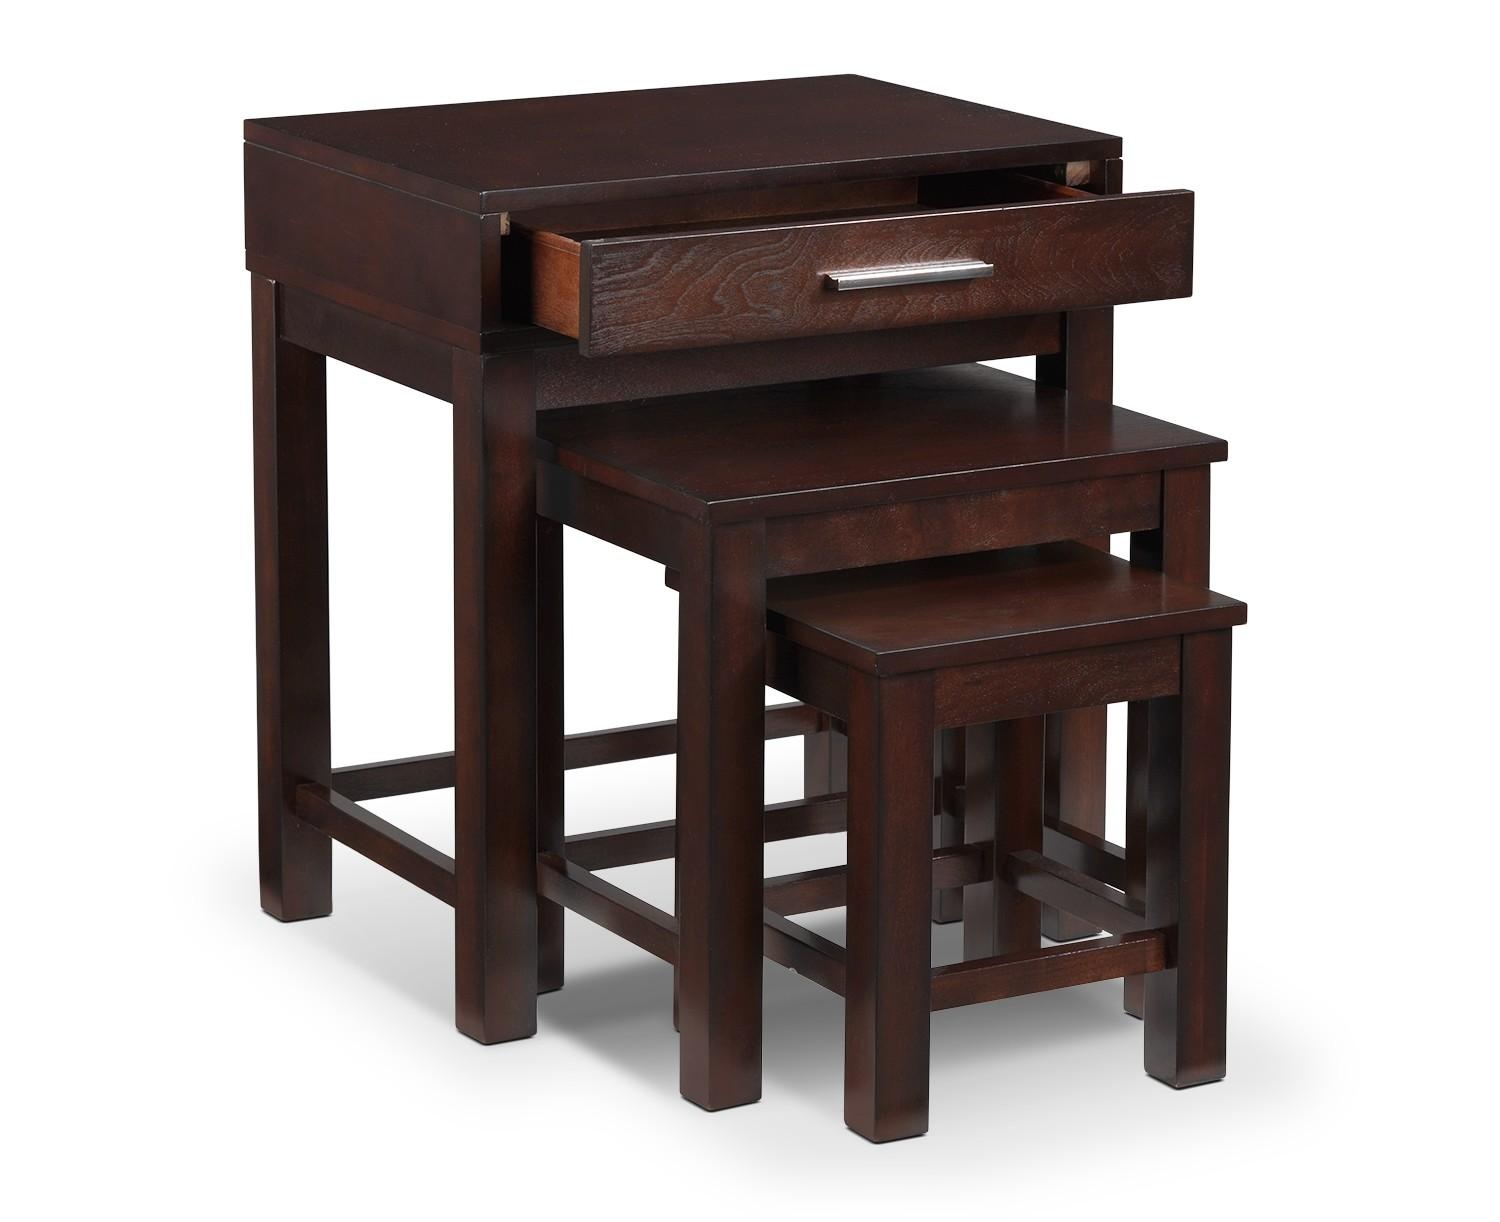 Nesting End Tables Contemporary Wood